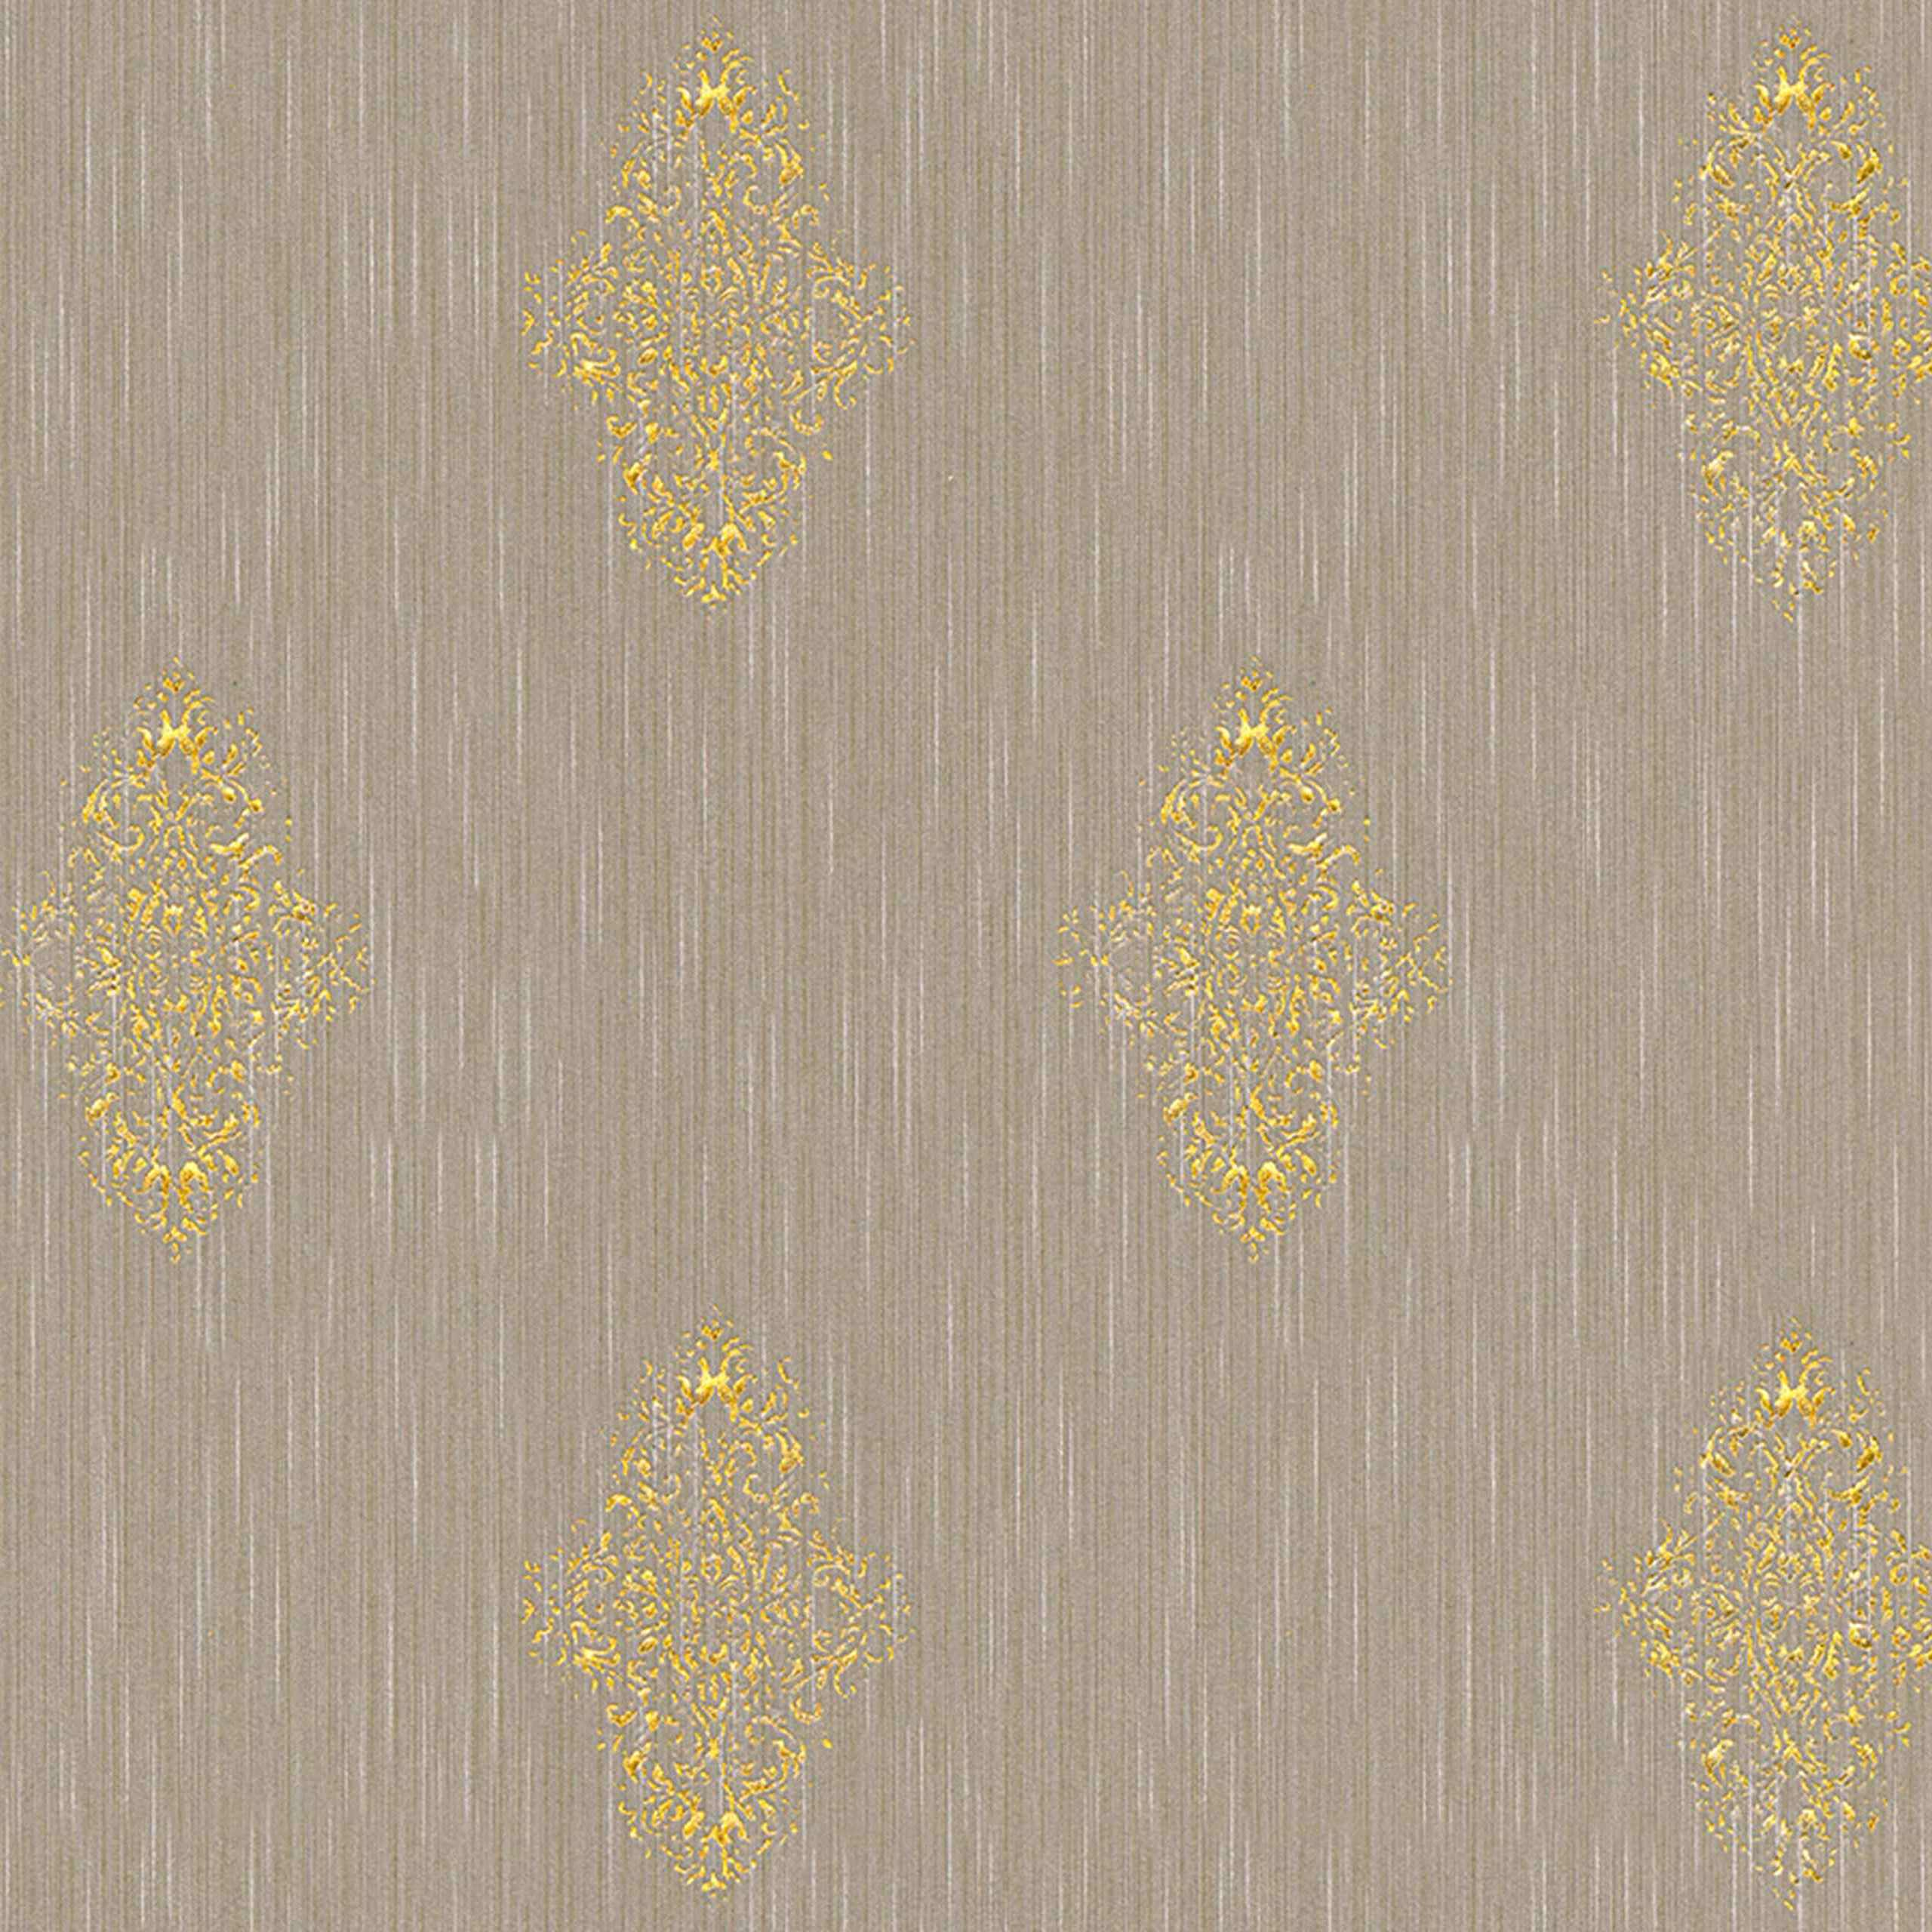 A.S. Creation Tapete Kollektion Luxury Wallpaper 319463 Barock